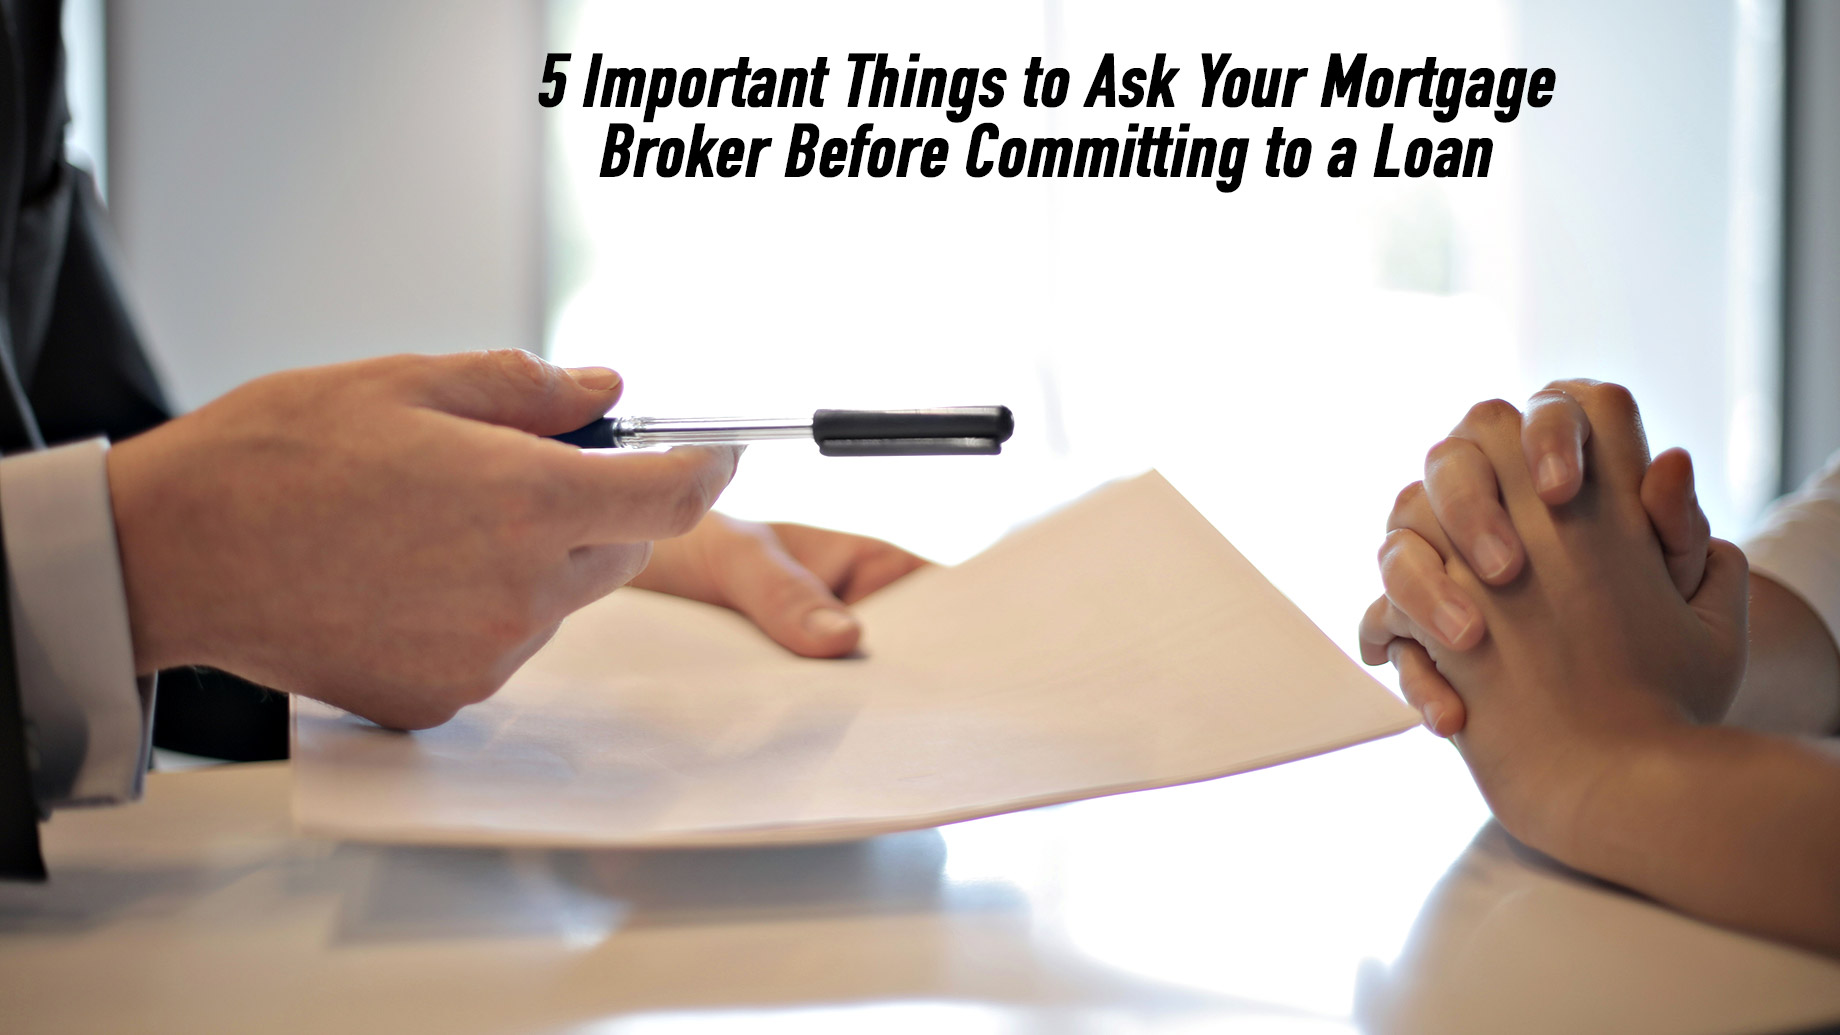 5 Important Things to Ask Your Mortgage Broker Before Committing to a Loan